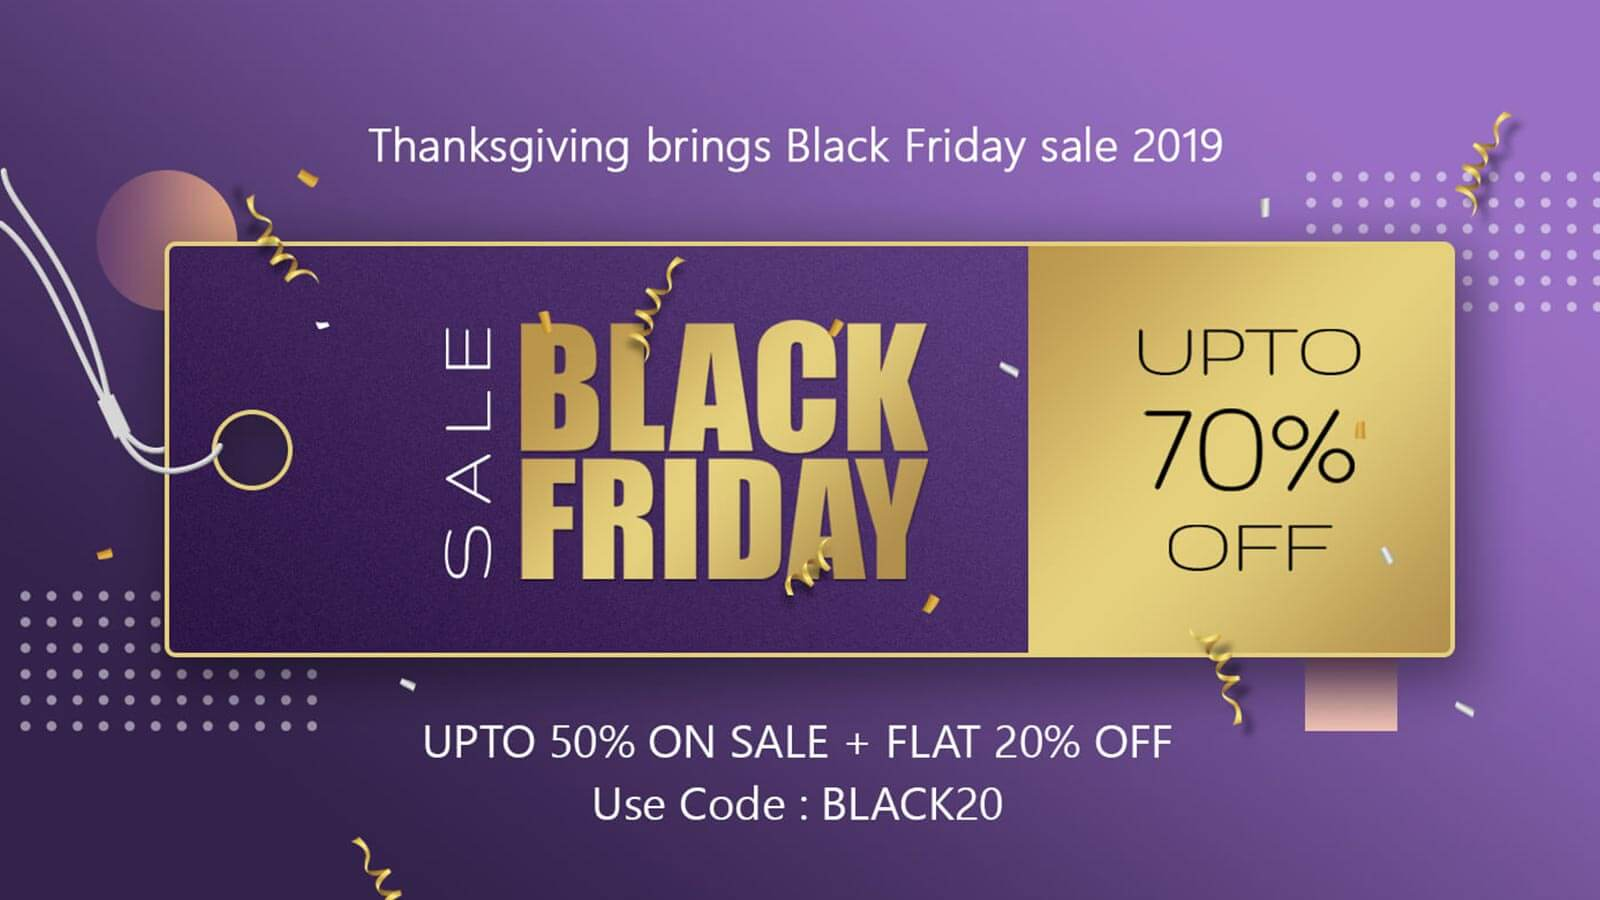 Spread smiles & more care-The Black Friday sale is here